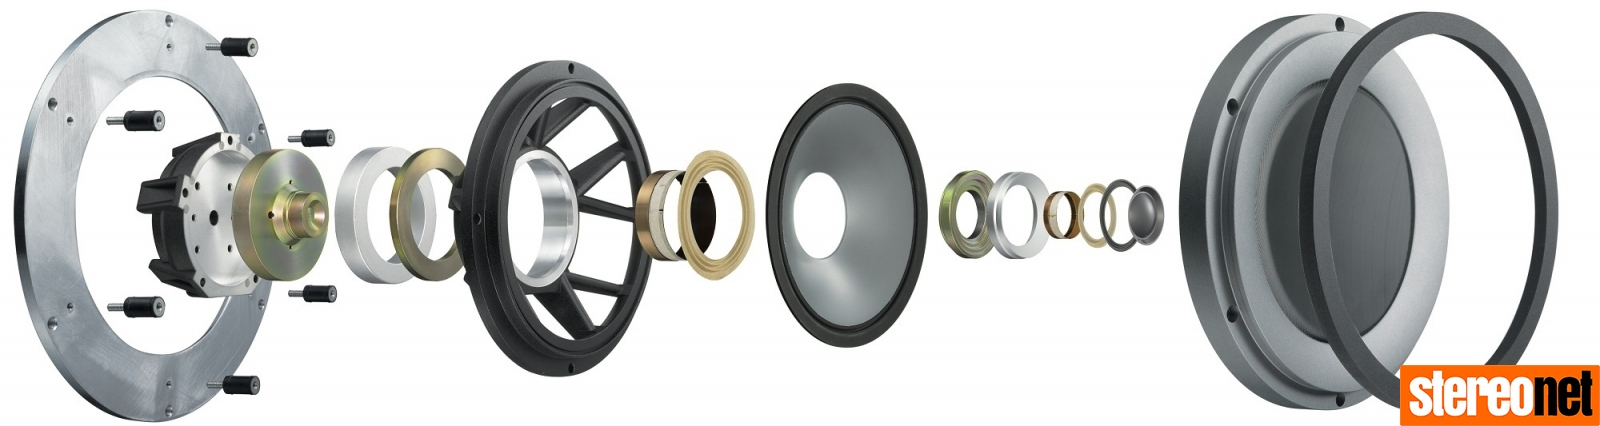 TAD R1TX Reference Loudspeakers